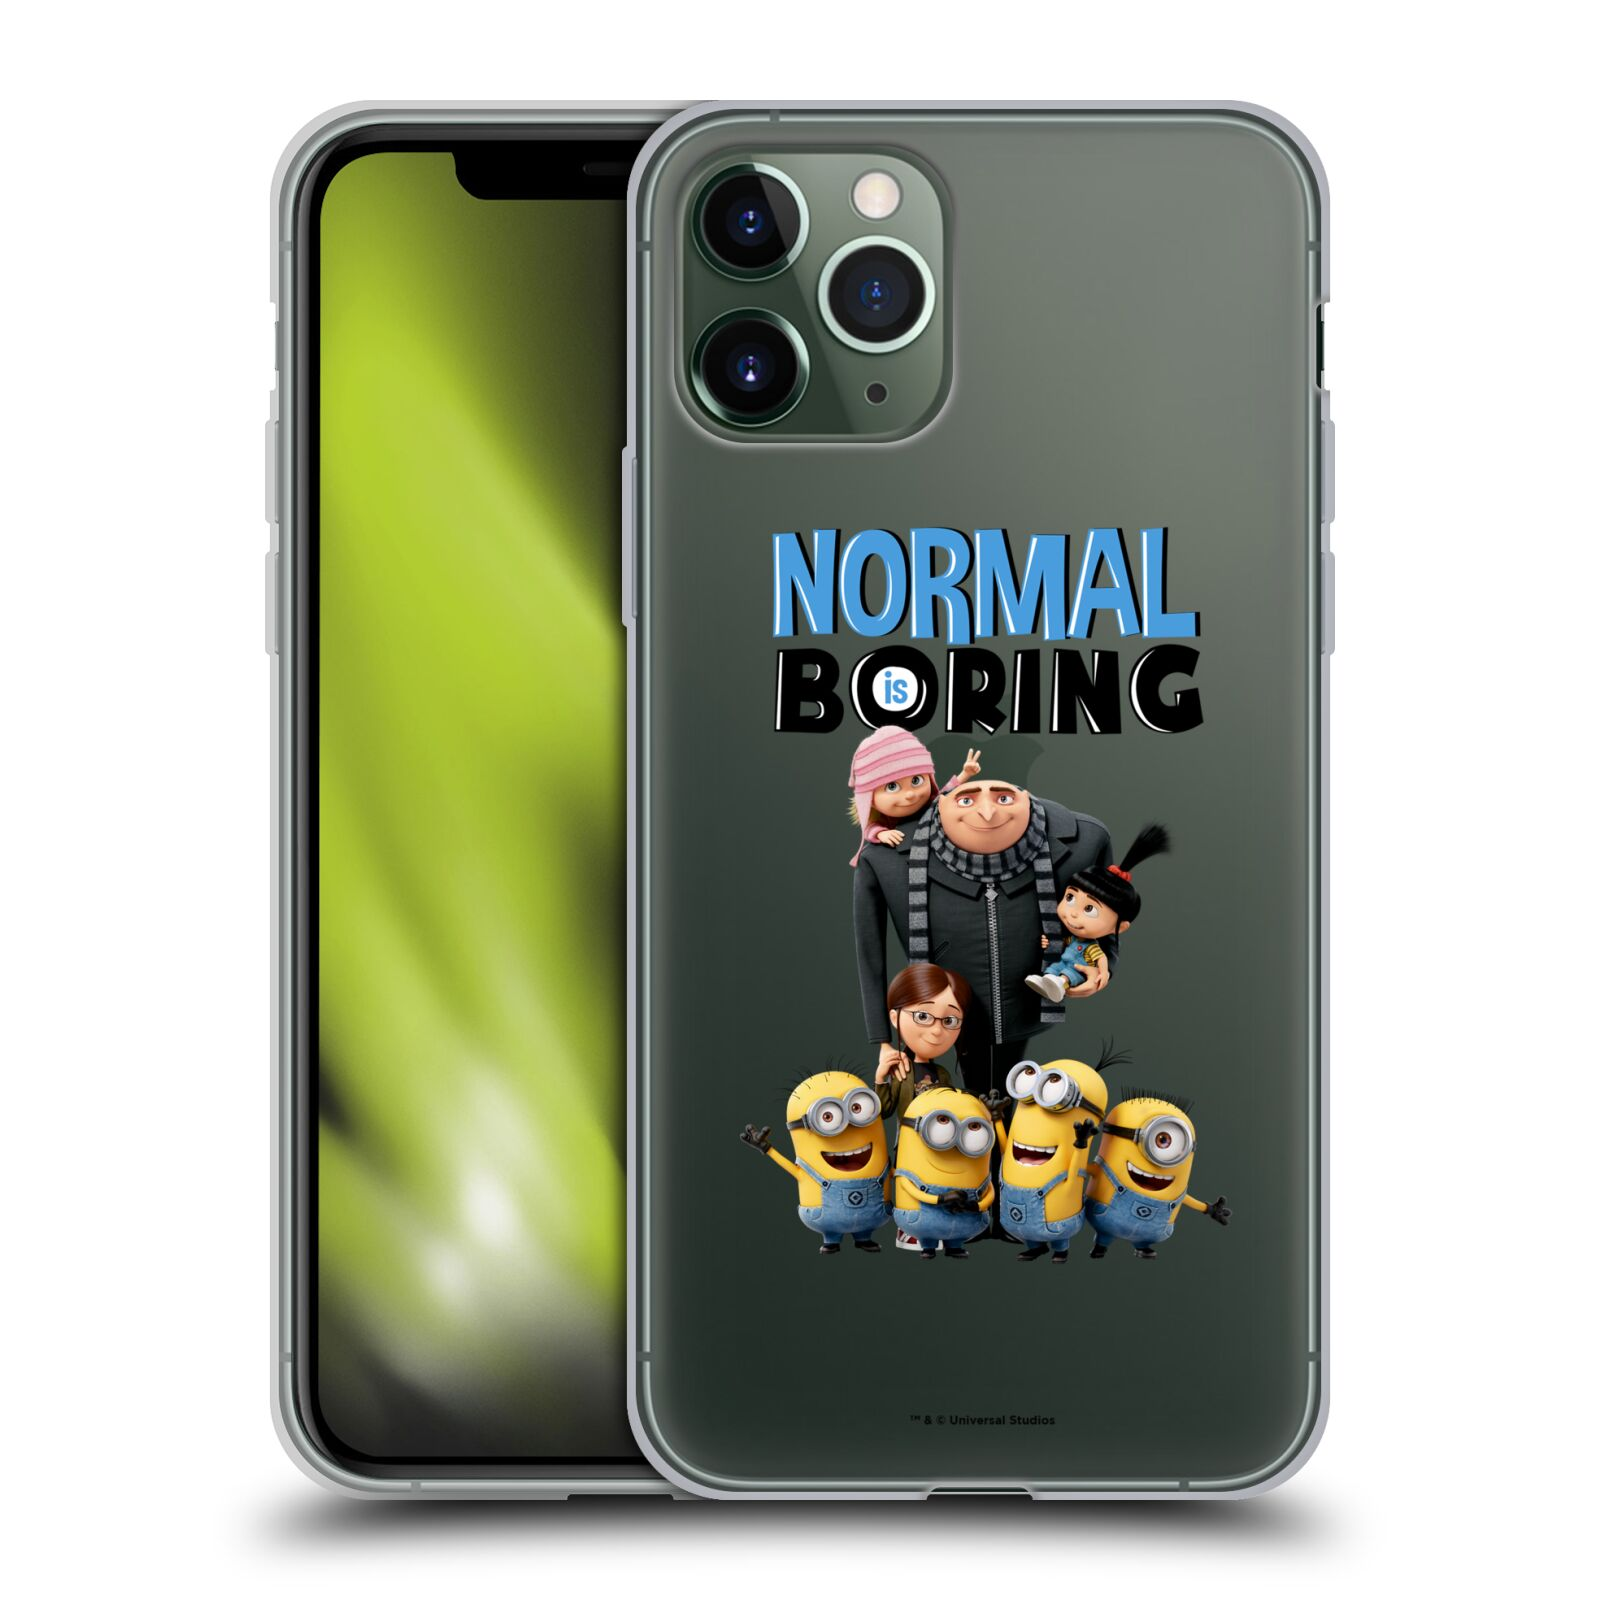 usb adaptér do auta | Silikonové pouzdro na mobil Apple iPhone 11 Pro - Head Case - Normal is boring z filmu Já, padouch - Despicable Me